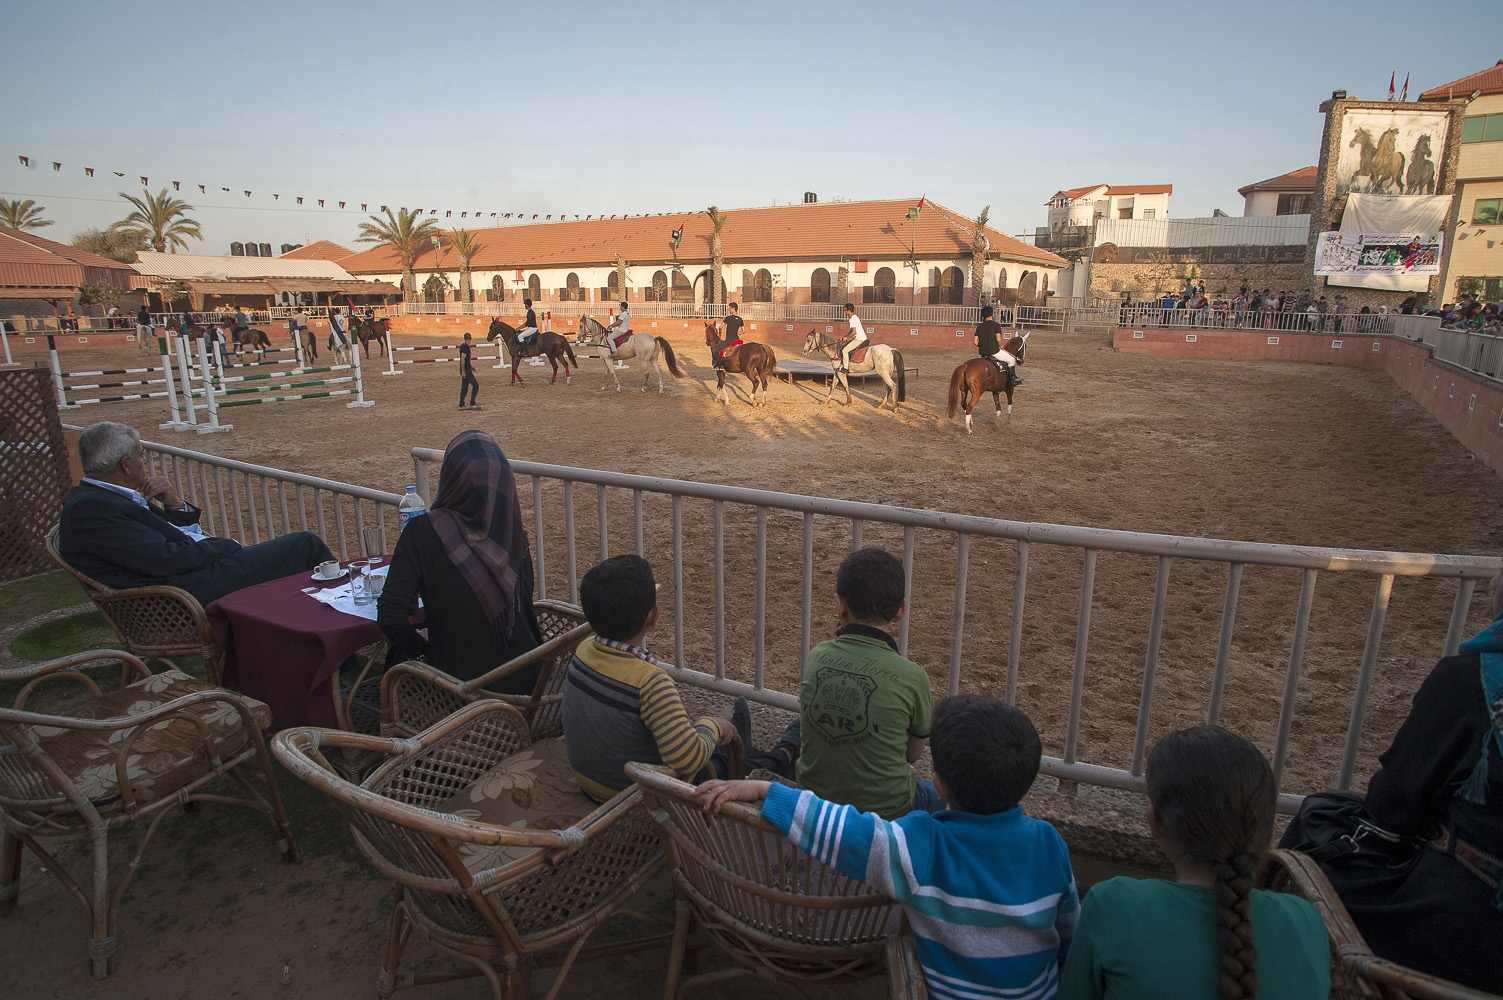 "The President's Equestrian Club in the north of Gaza. The Club's restaurant is ""The place to be seen for Gaza's teenage elite."" Catering to a wealthy, young, secular crowd. Situated adjacent to the Crazy Water Park it is part of the limited recreational ""circuit"" for wealthy Gazans."